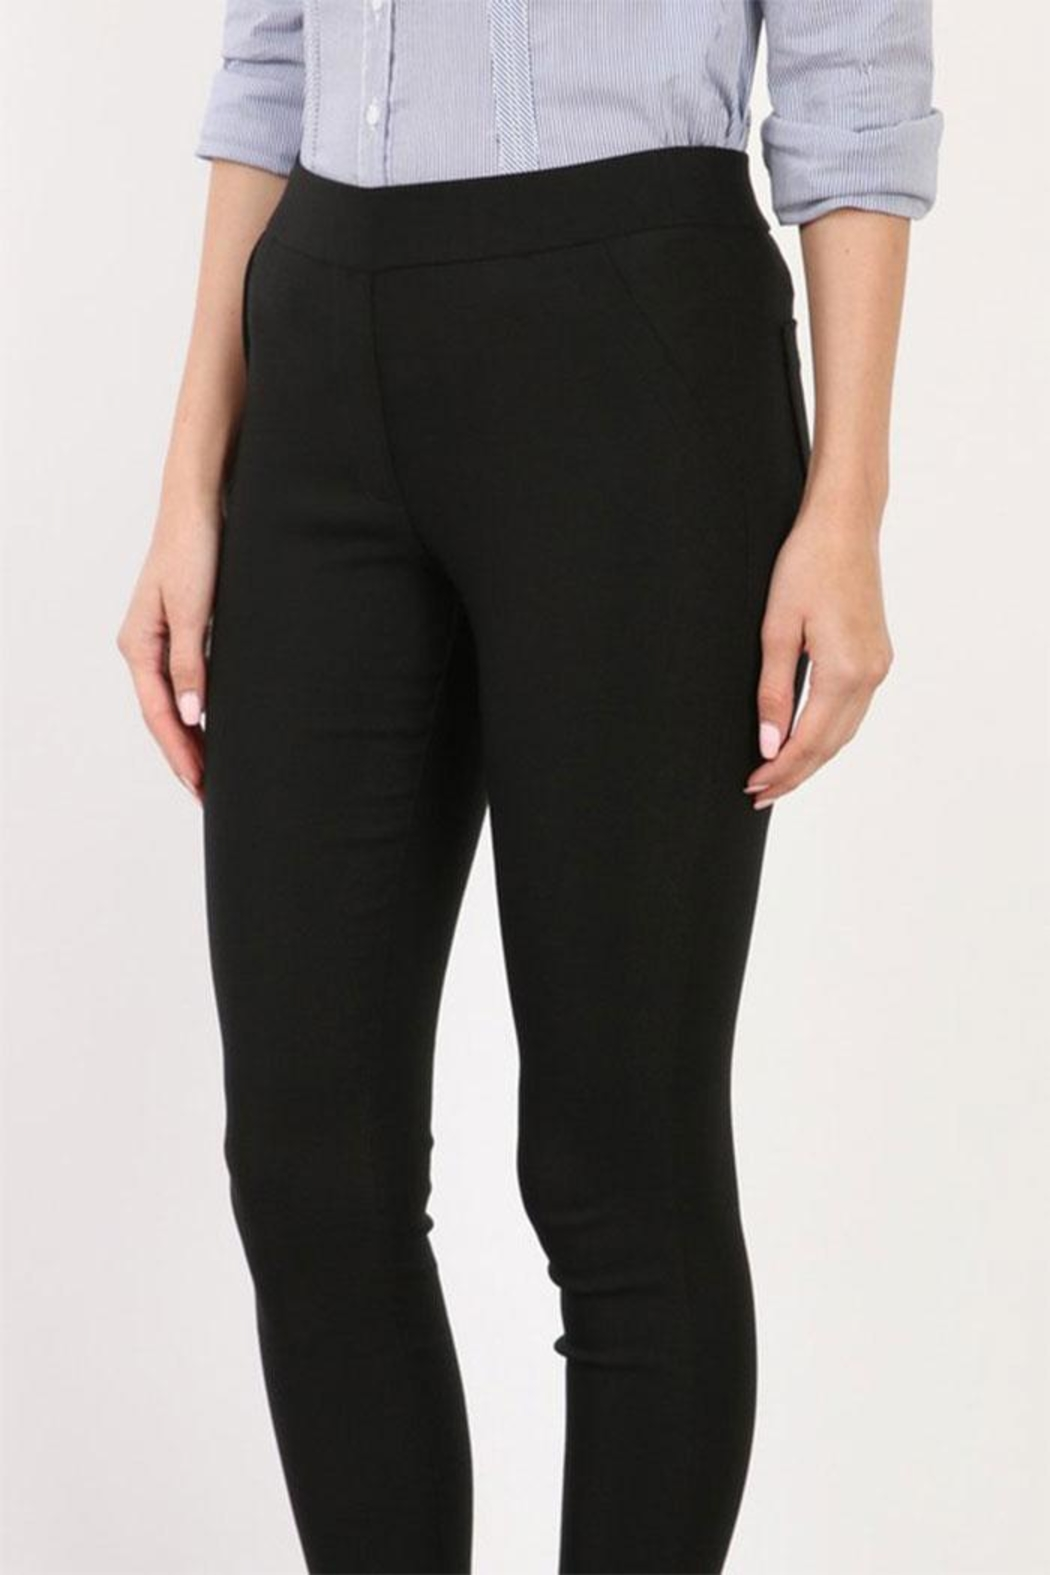 Mary Clan Four Way Stretch Pants - Front Full Image